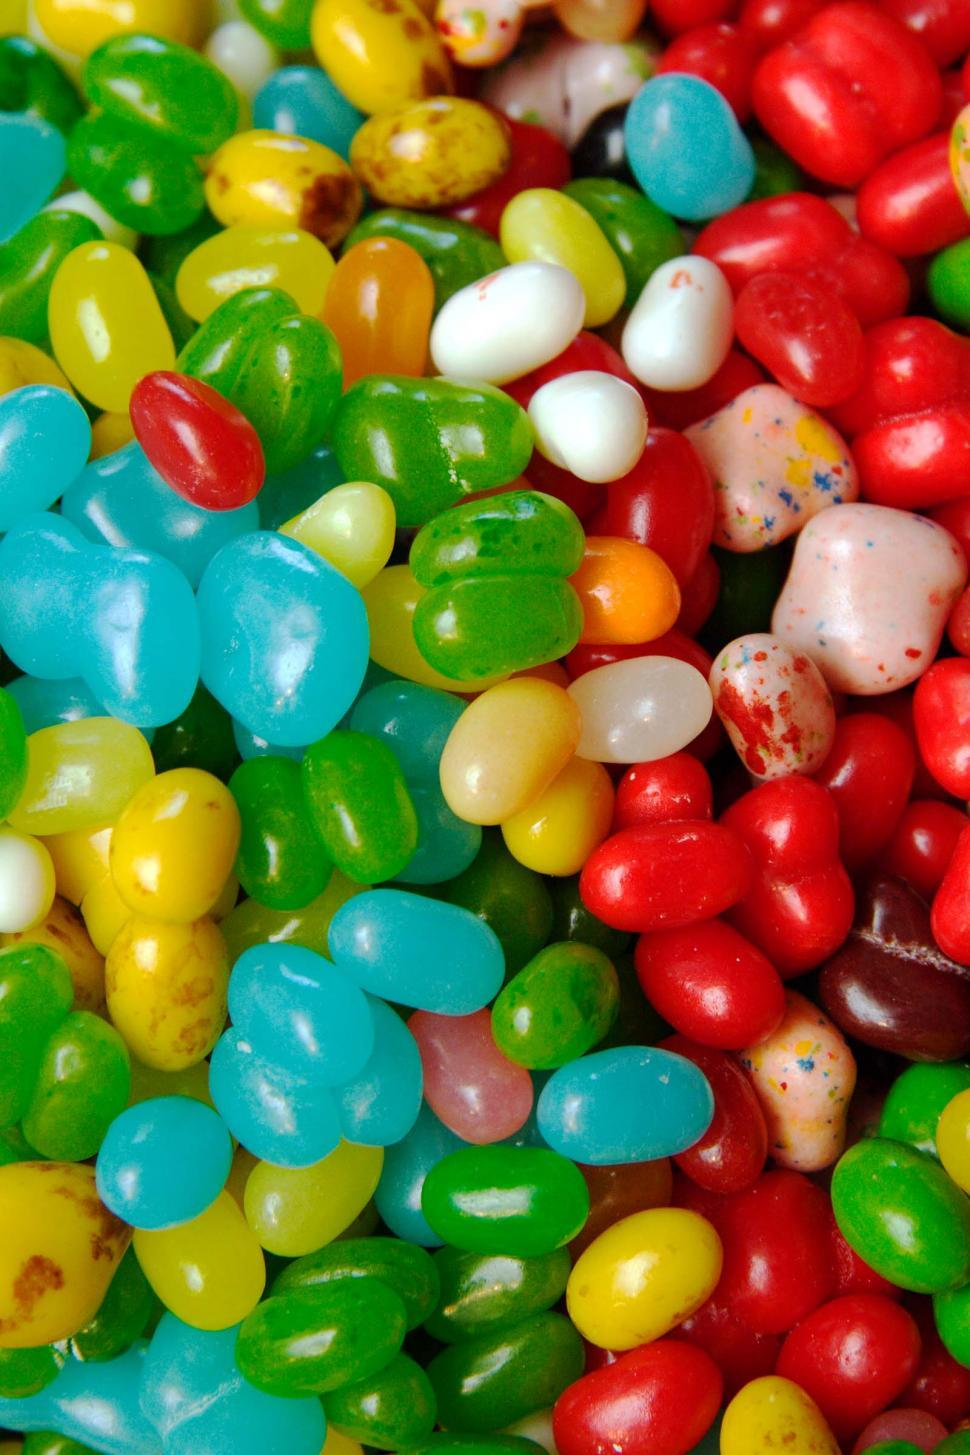 Download Free Stock HD Photo of Candy background Online